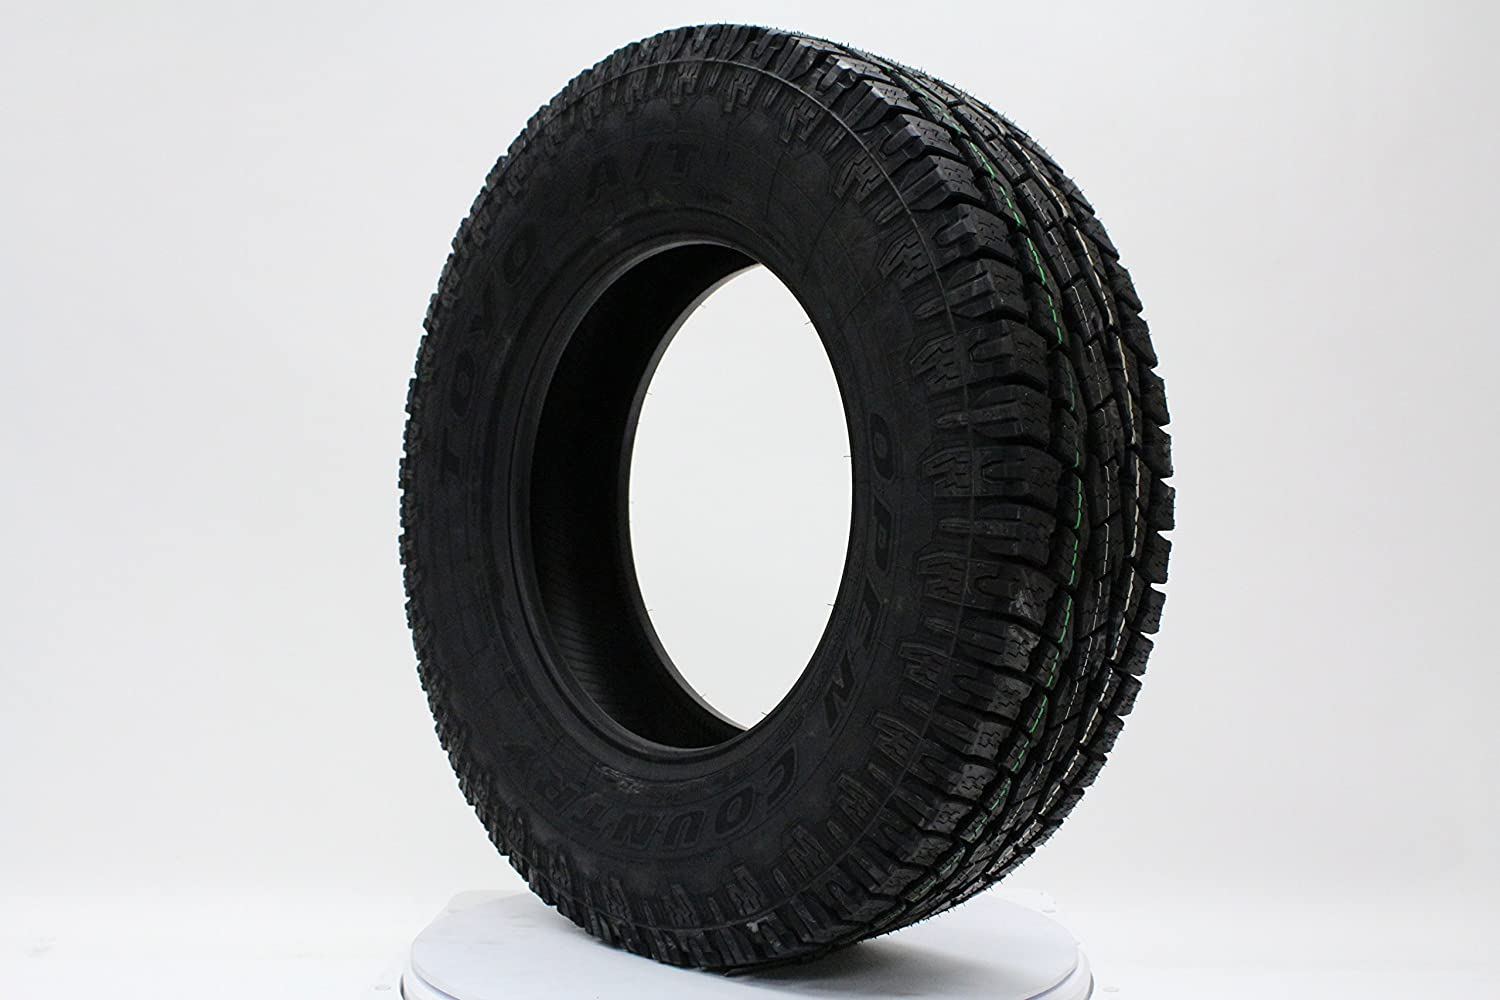 Amazon.com: Toyo Open Country A/T II Radial Tire - 265/65R17 110T: Automotive